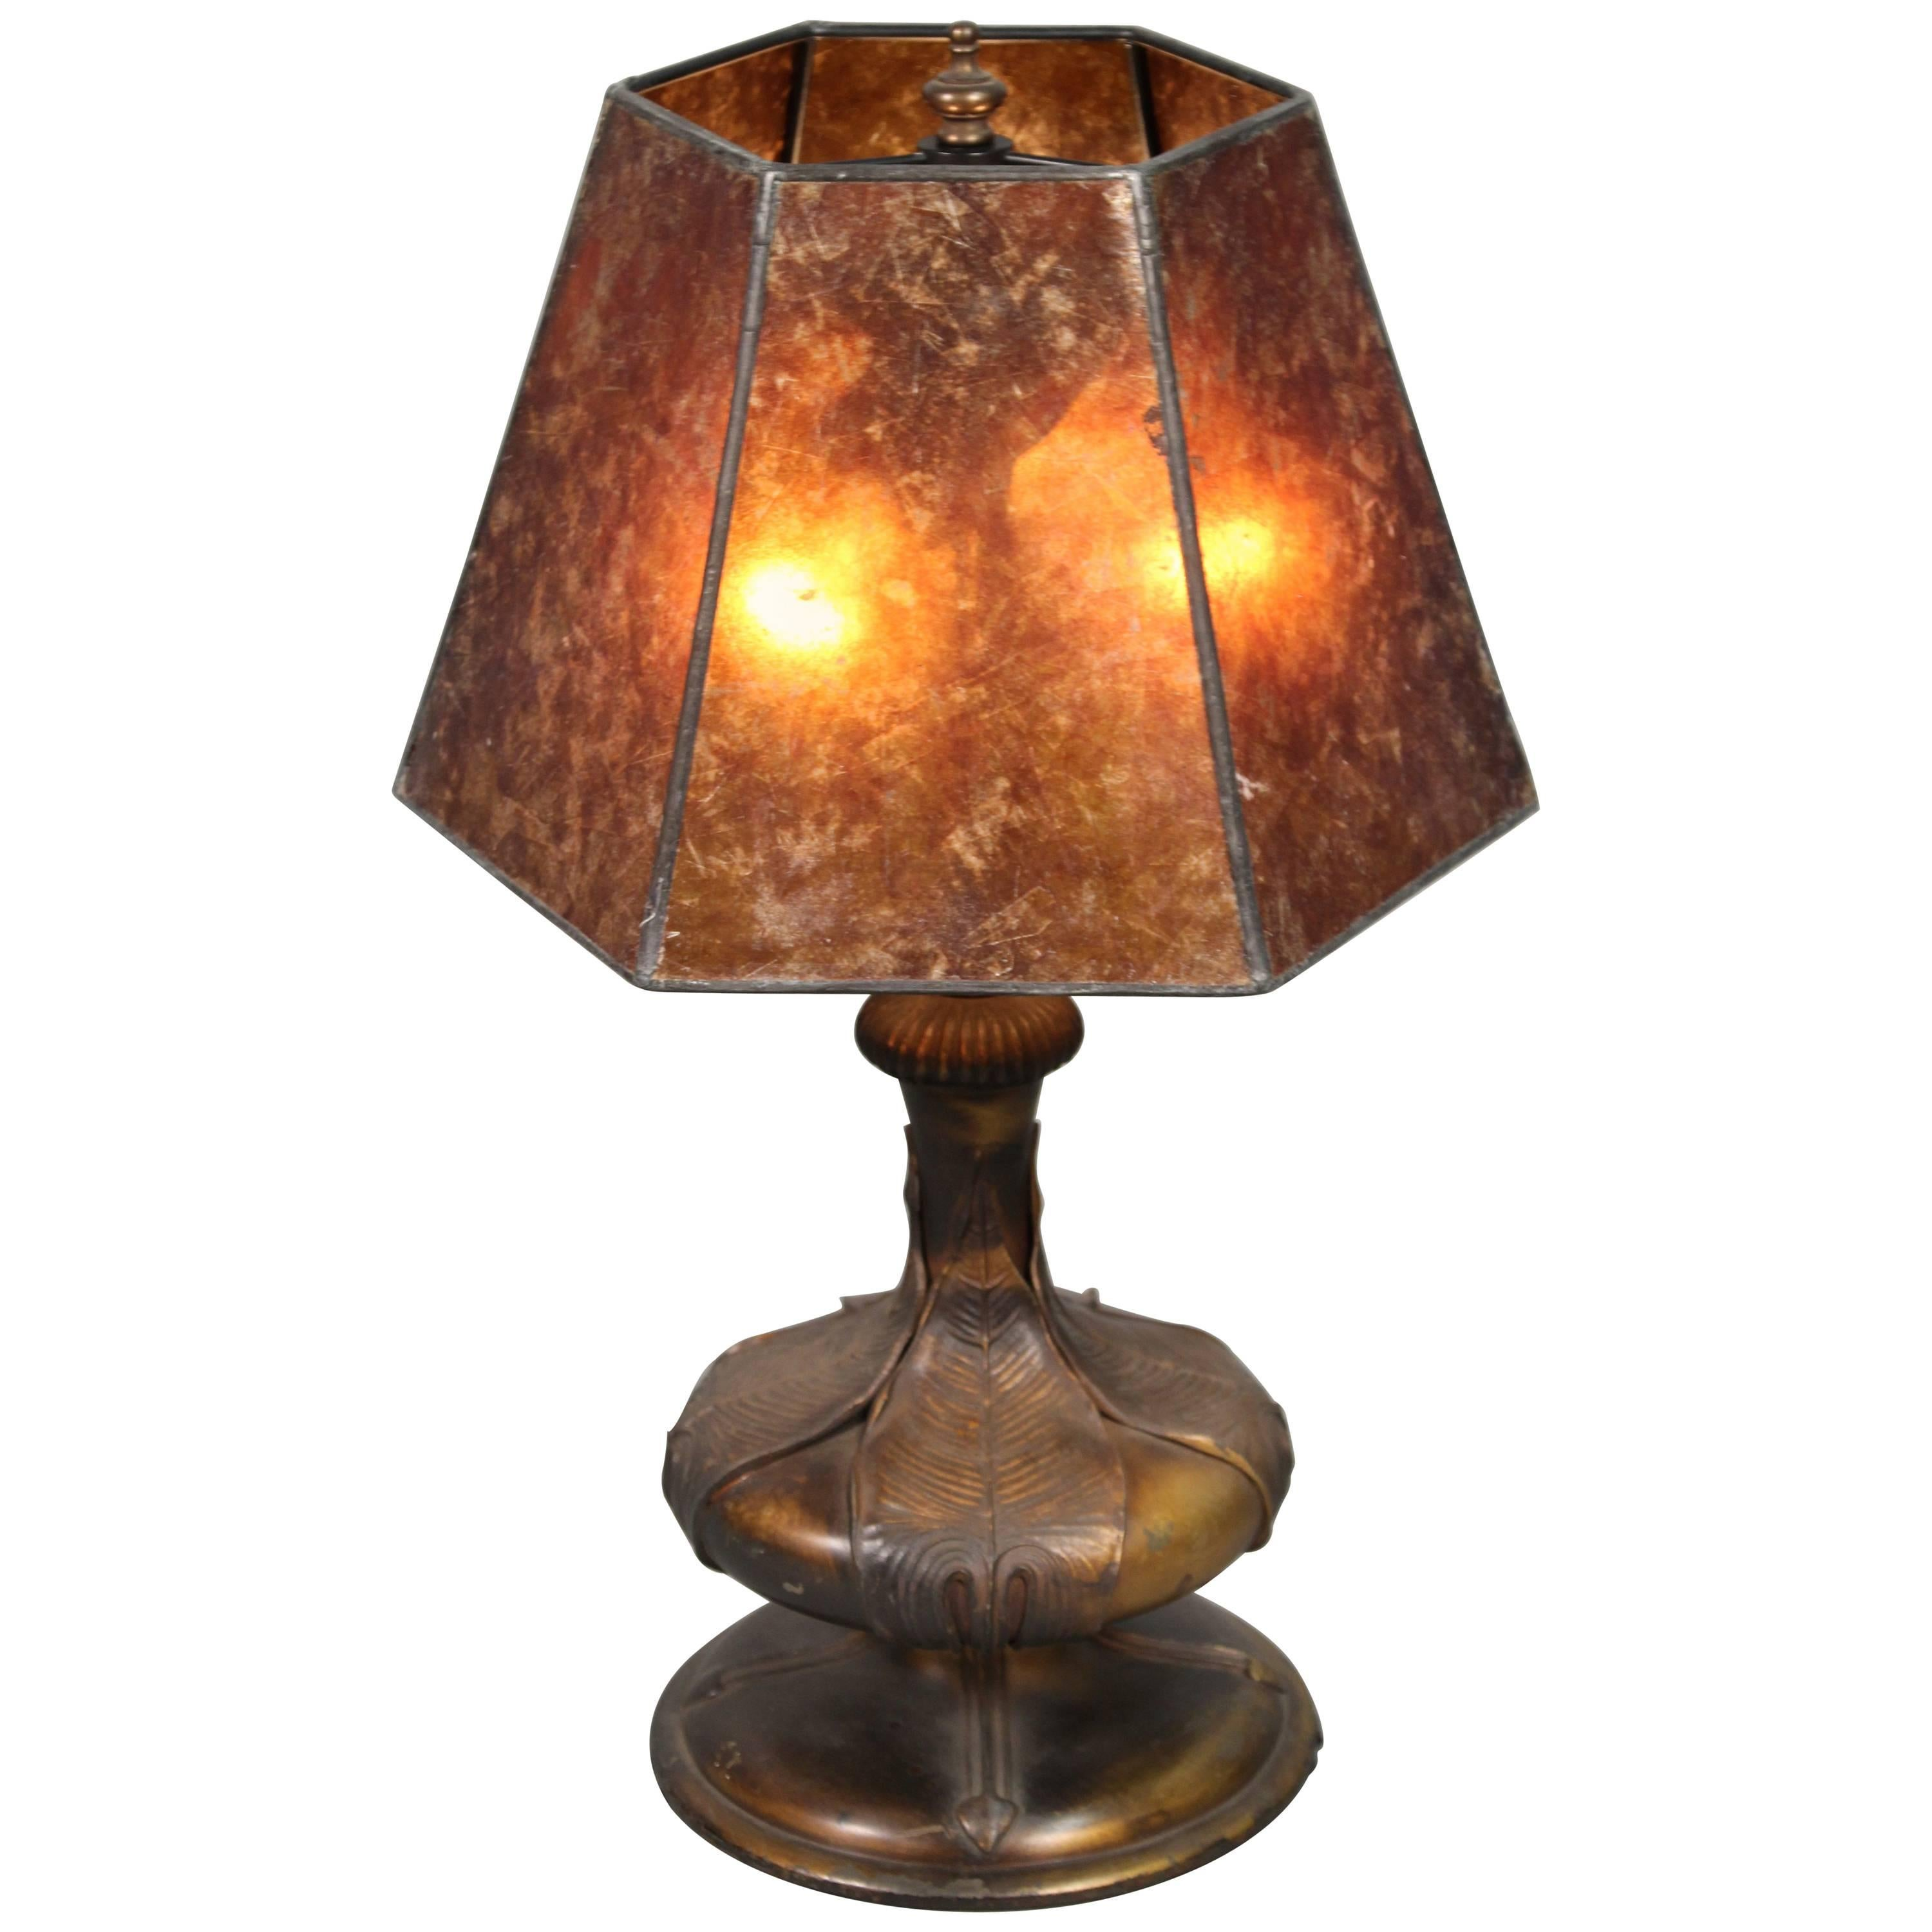 1920s Table Lamp With New Mica Shade At 1stdibs